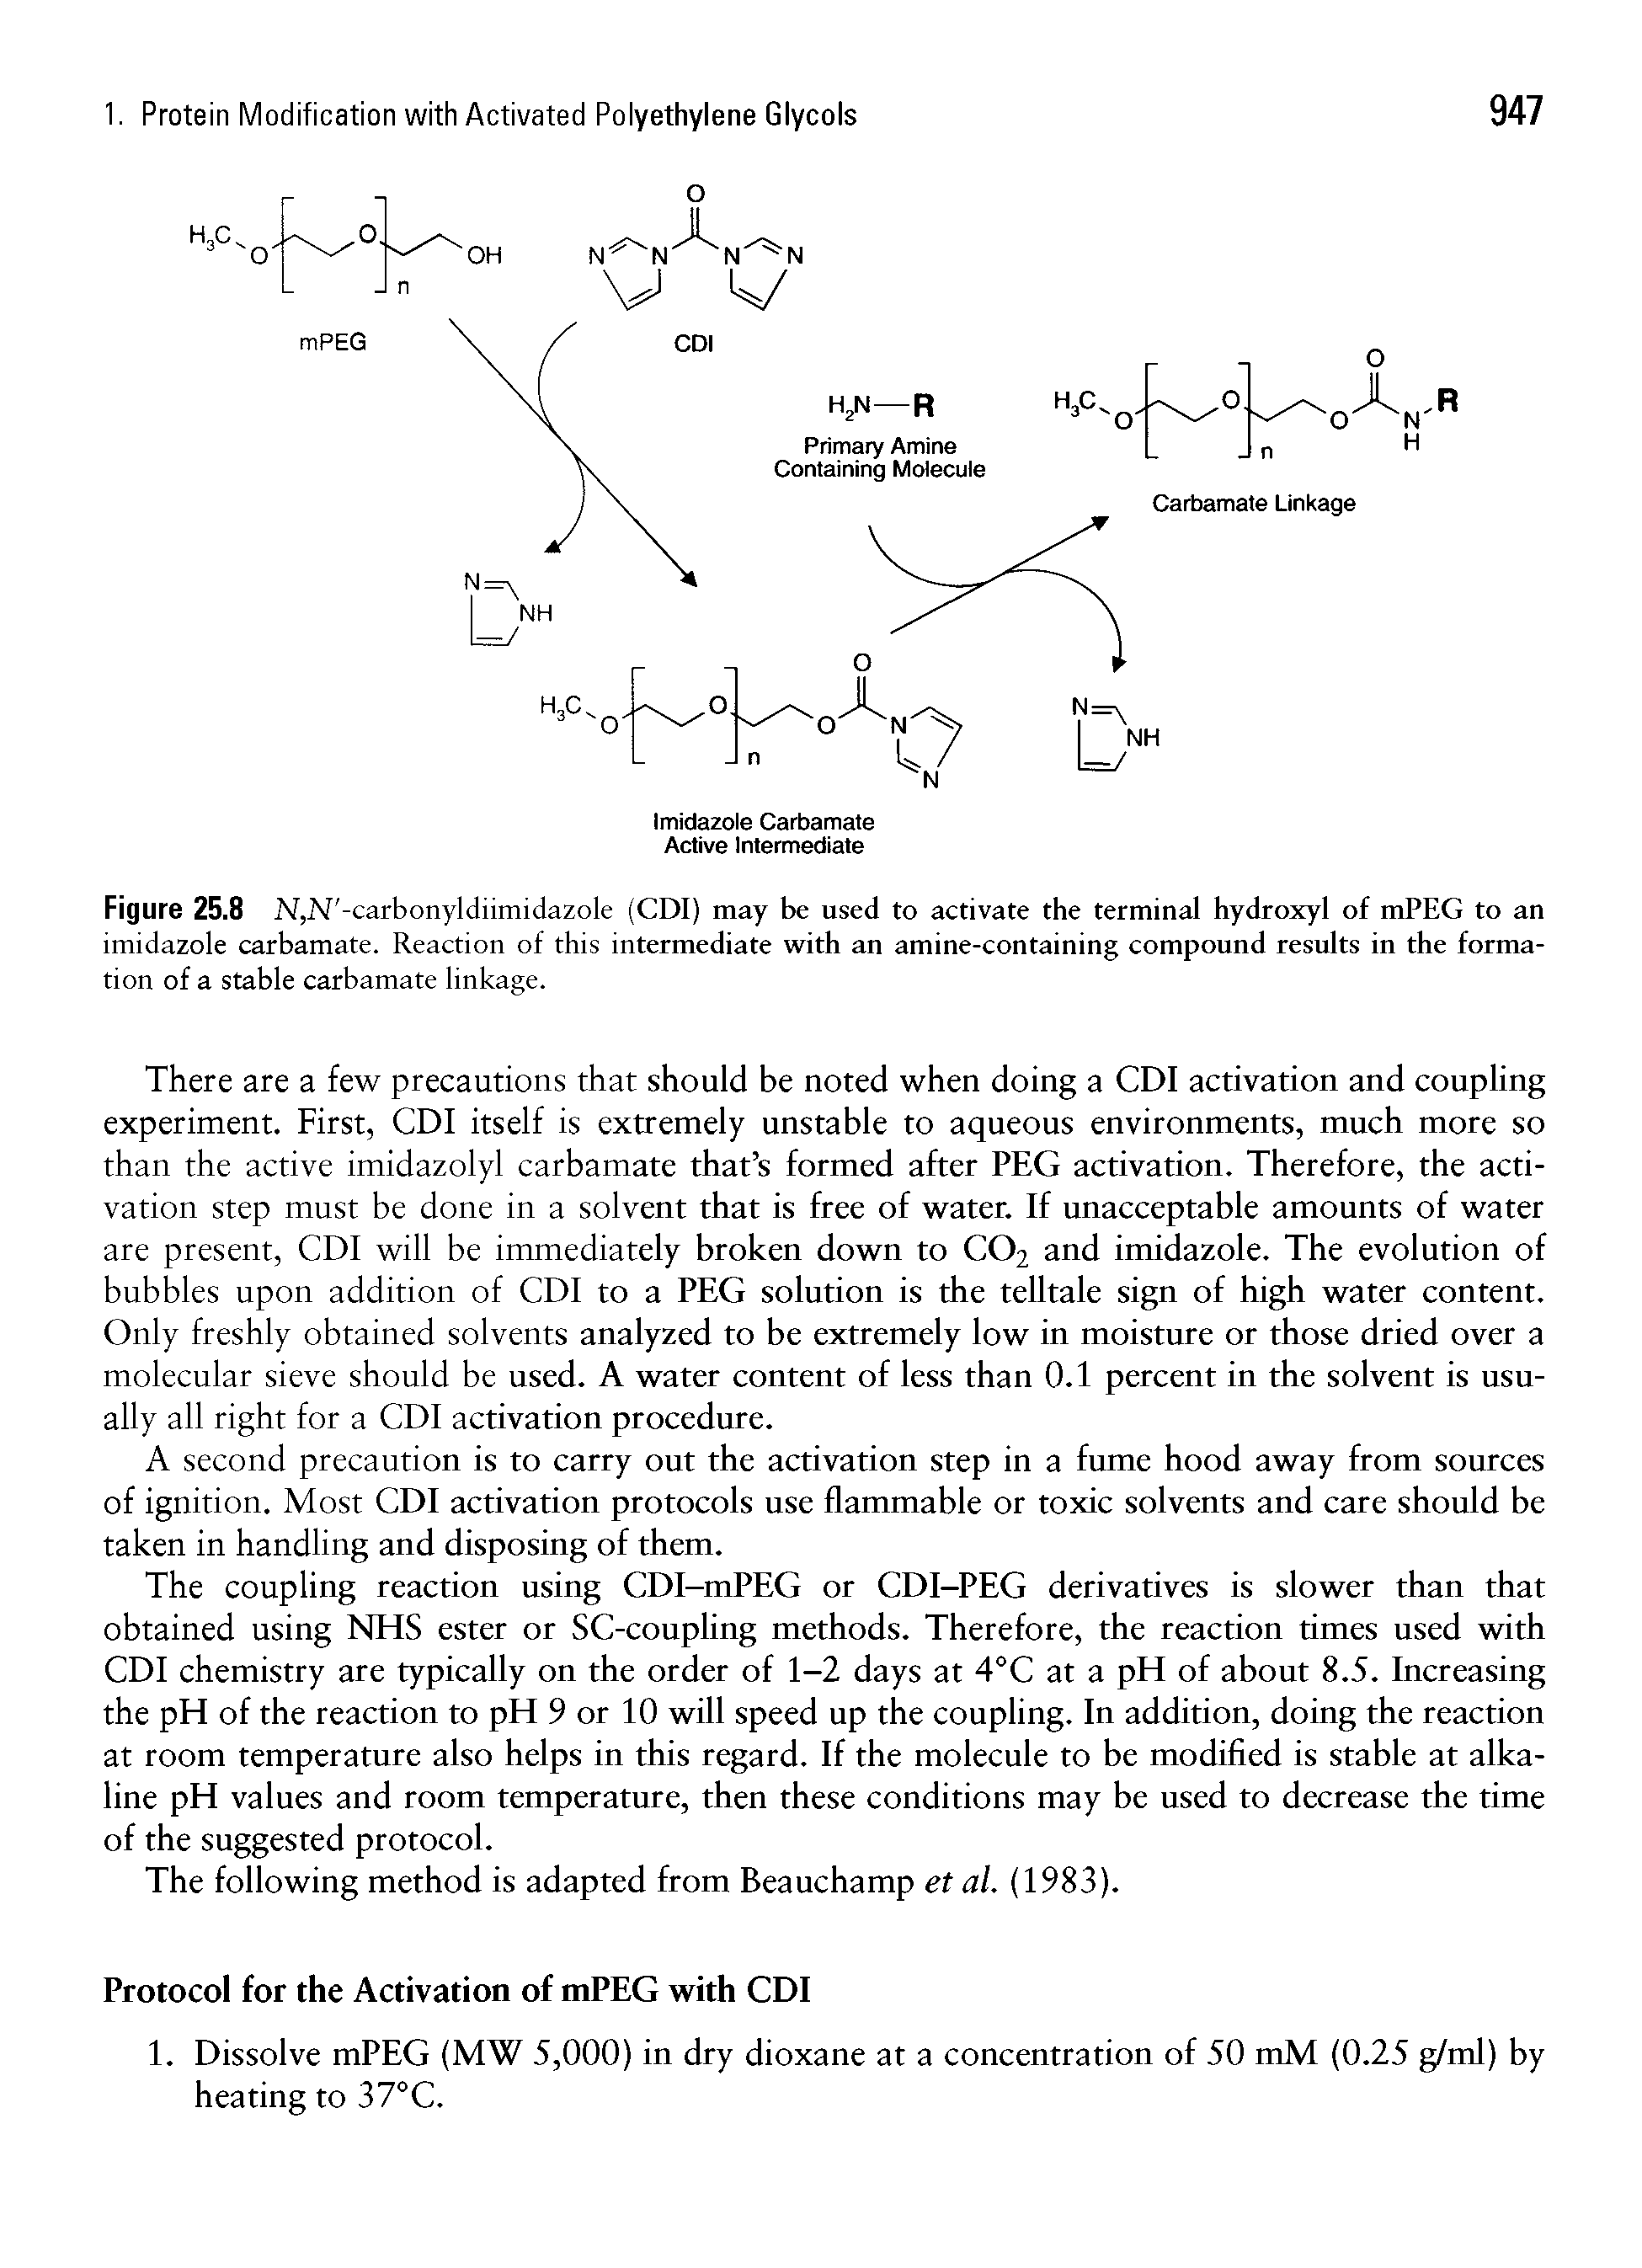 "Figure 25.8 N,N -carbonyldiimidazole (CDI) may be used to activate the <a href=""/info/hydroxyl_terminated"">terminal hydroxyl</a> of mPEG to an <a href=""/info/imidazole_carbamate"">imidazole carbamate</a>. Reaction of this <a href=""/info/with_intermediates"">intermediate with</a> an amine-<a href=""/info/tin_containing_compounds"">containing compound</a> results in the formation of a stable carbamate linkage."